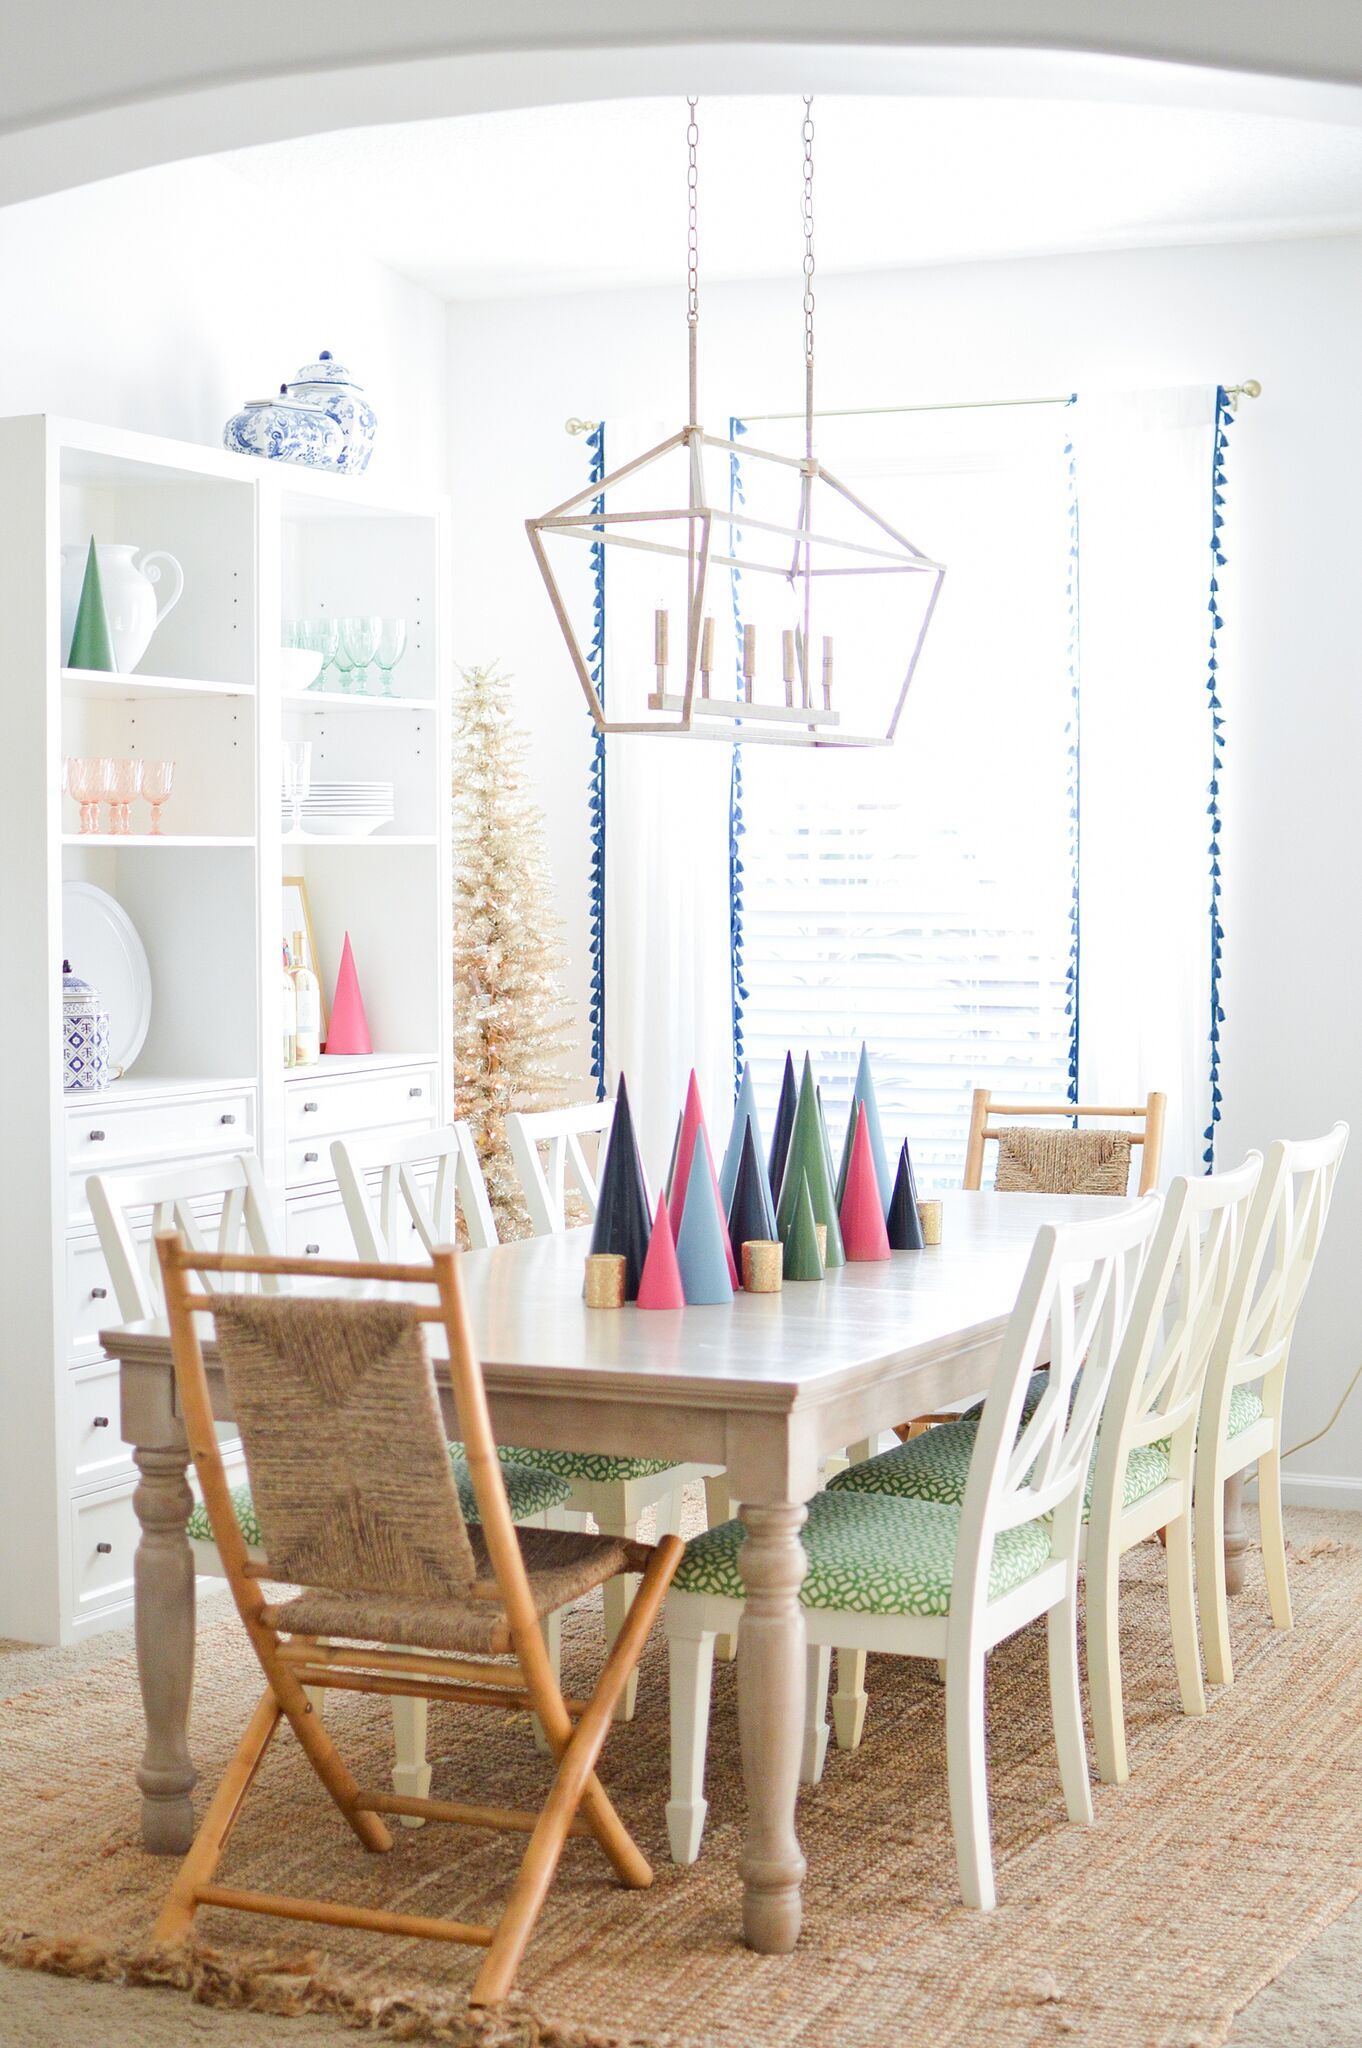 Christmas Eclectic Home Tour - love this dining room with colorful modern tree centerpiece